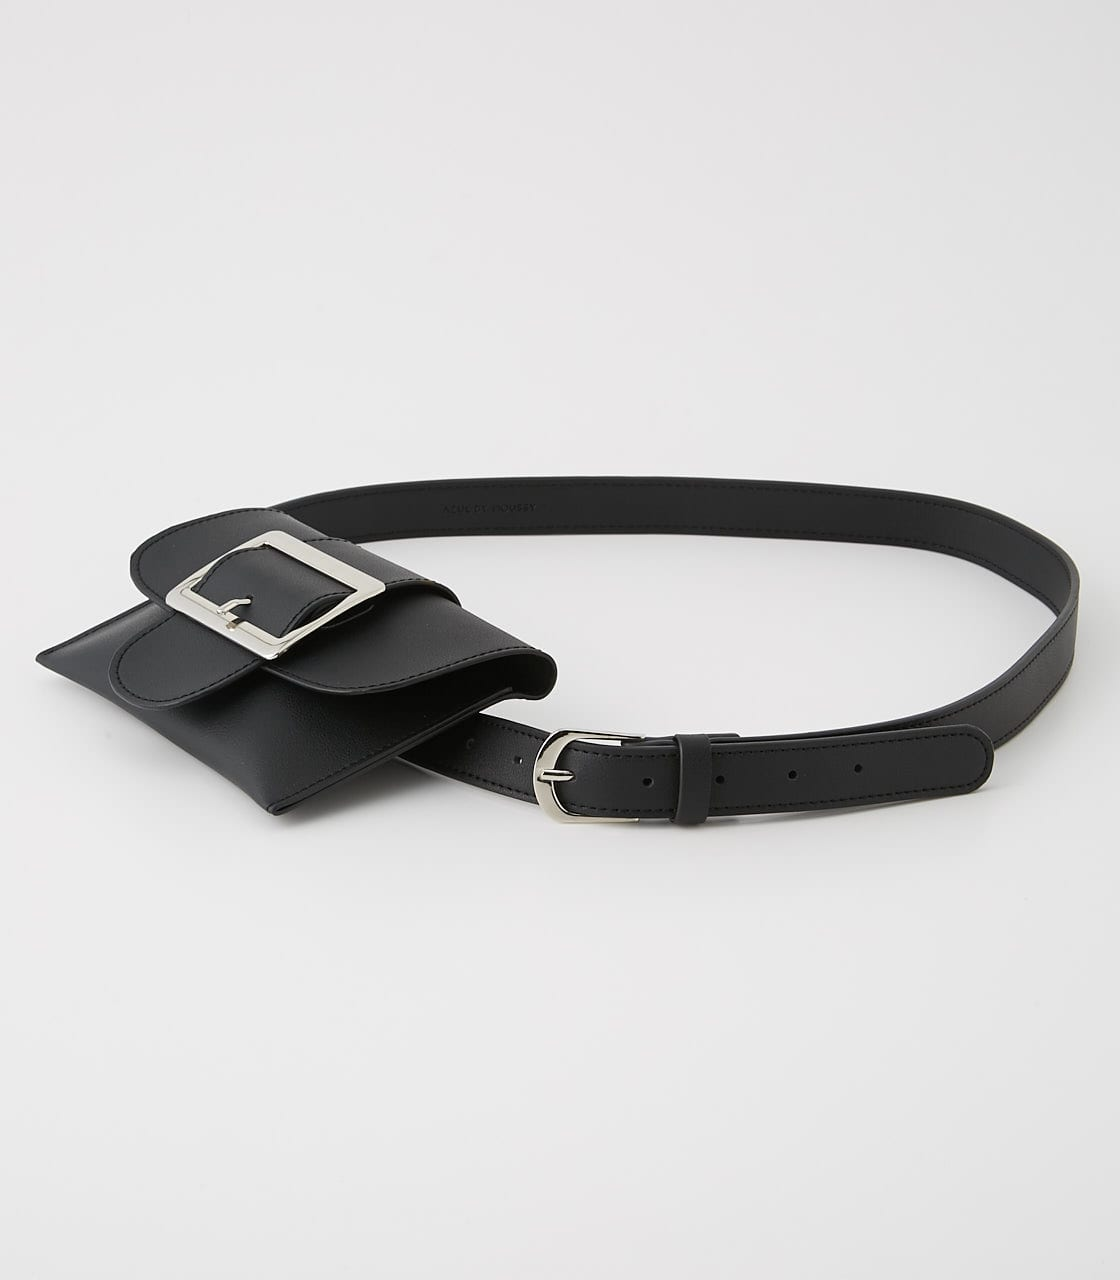 【AZUL BY MOUSSY】SQUARE BUCKLE PORCH SET BELT 詳細画像 BLK 2